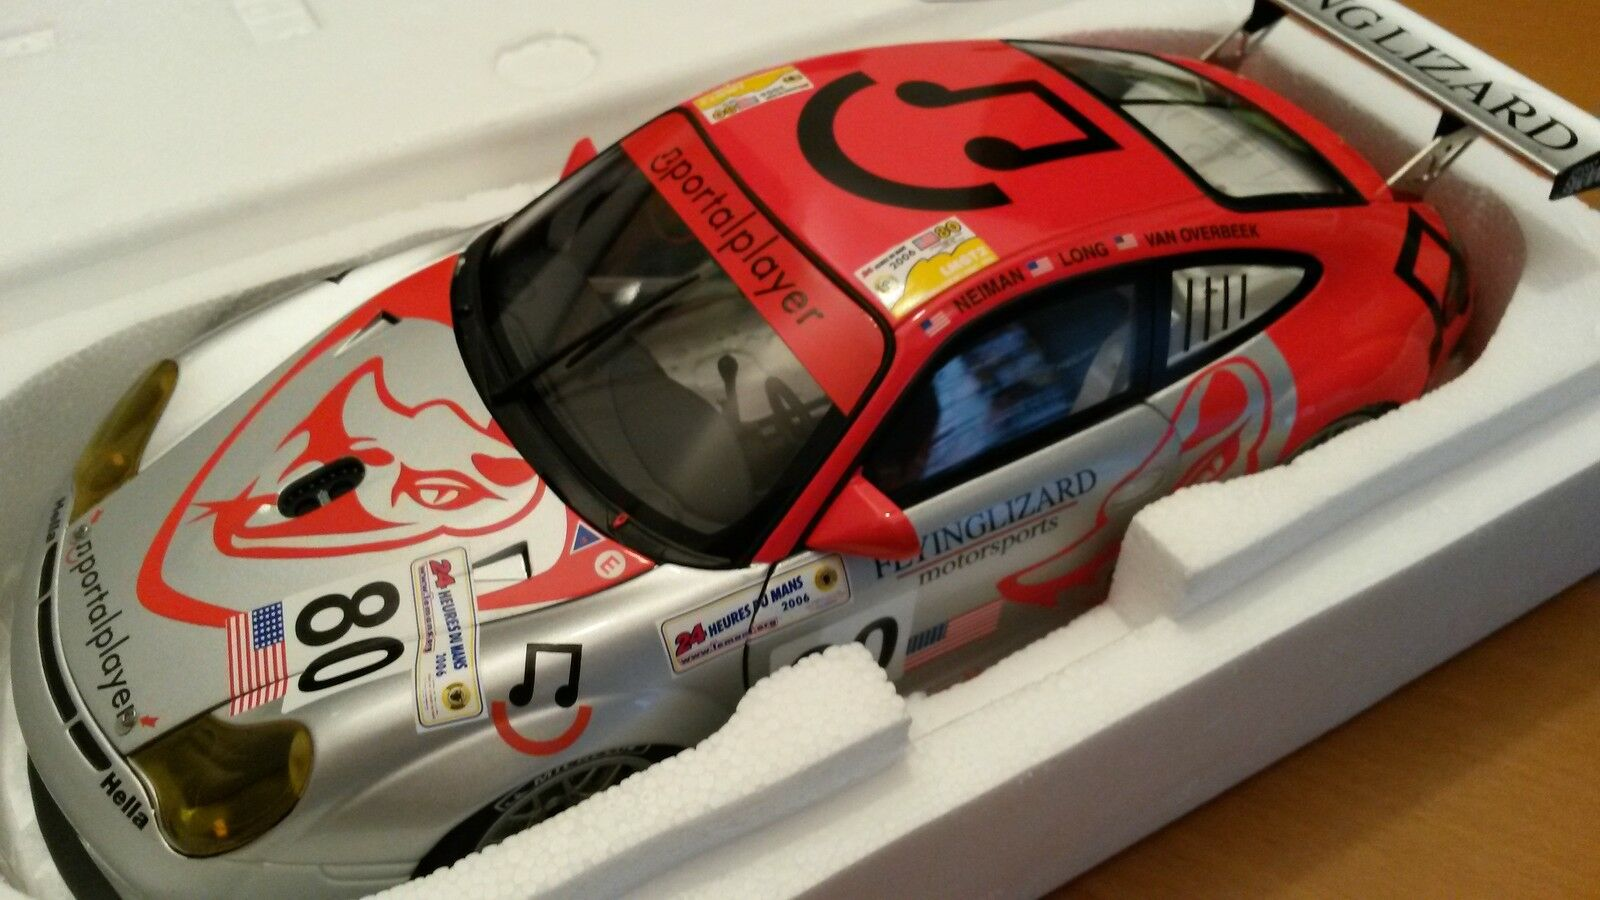 1:18 MINICHAMPS PORSCHE 911 GT3 RSR LE MANS 2006 #80 Flying Lizard